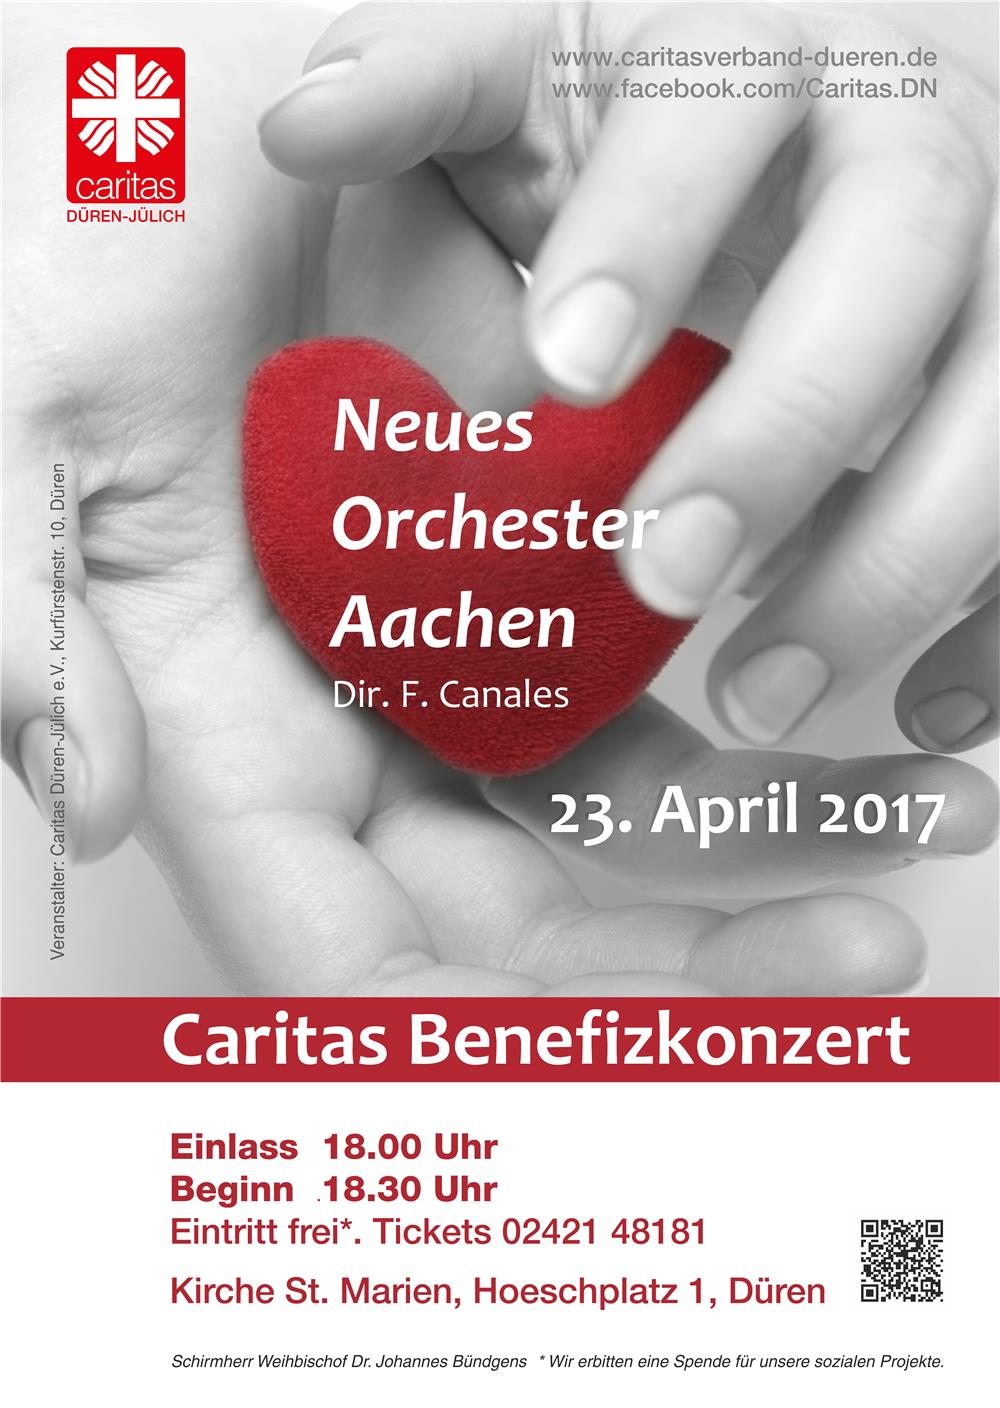 Benefizkonzert am 23.4.2017